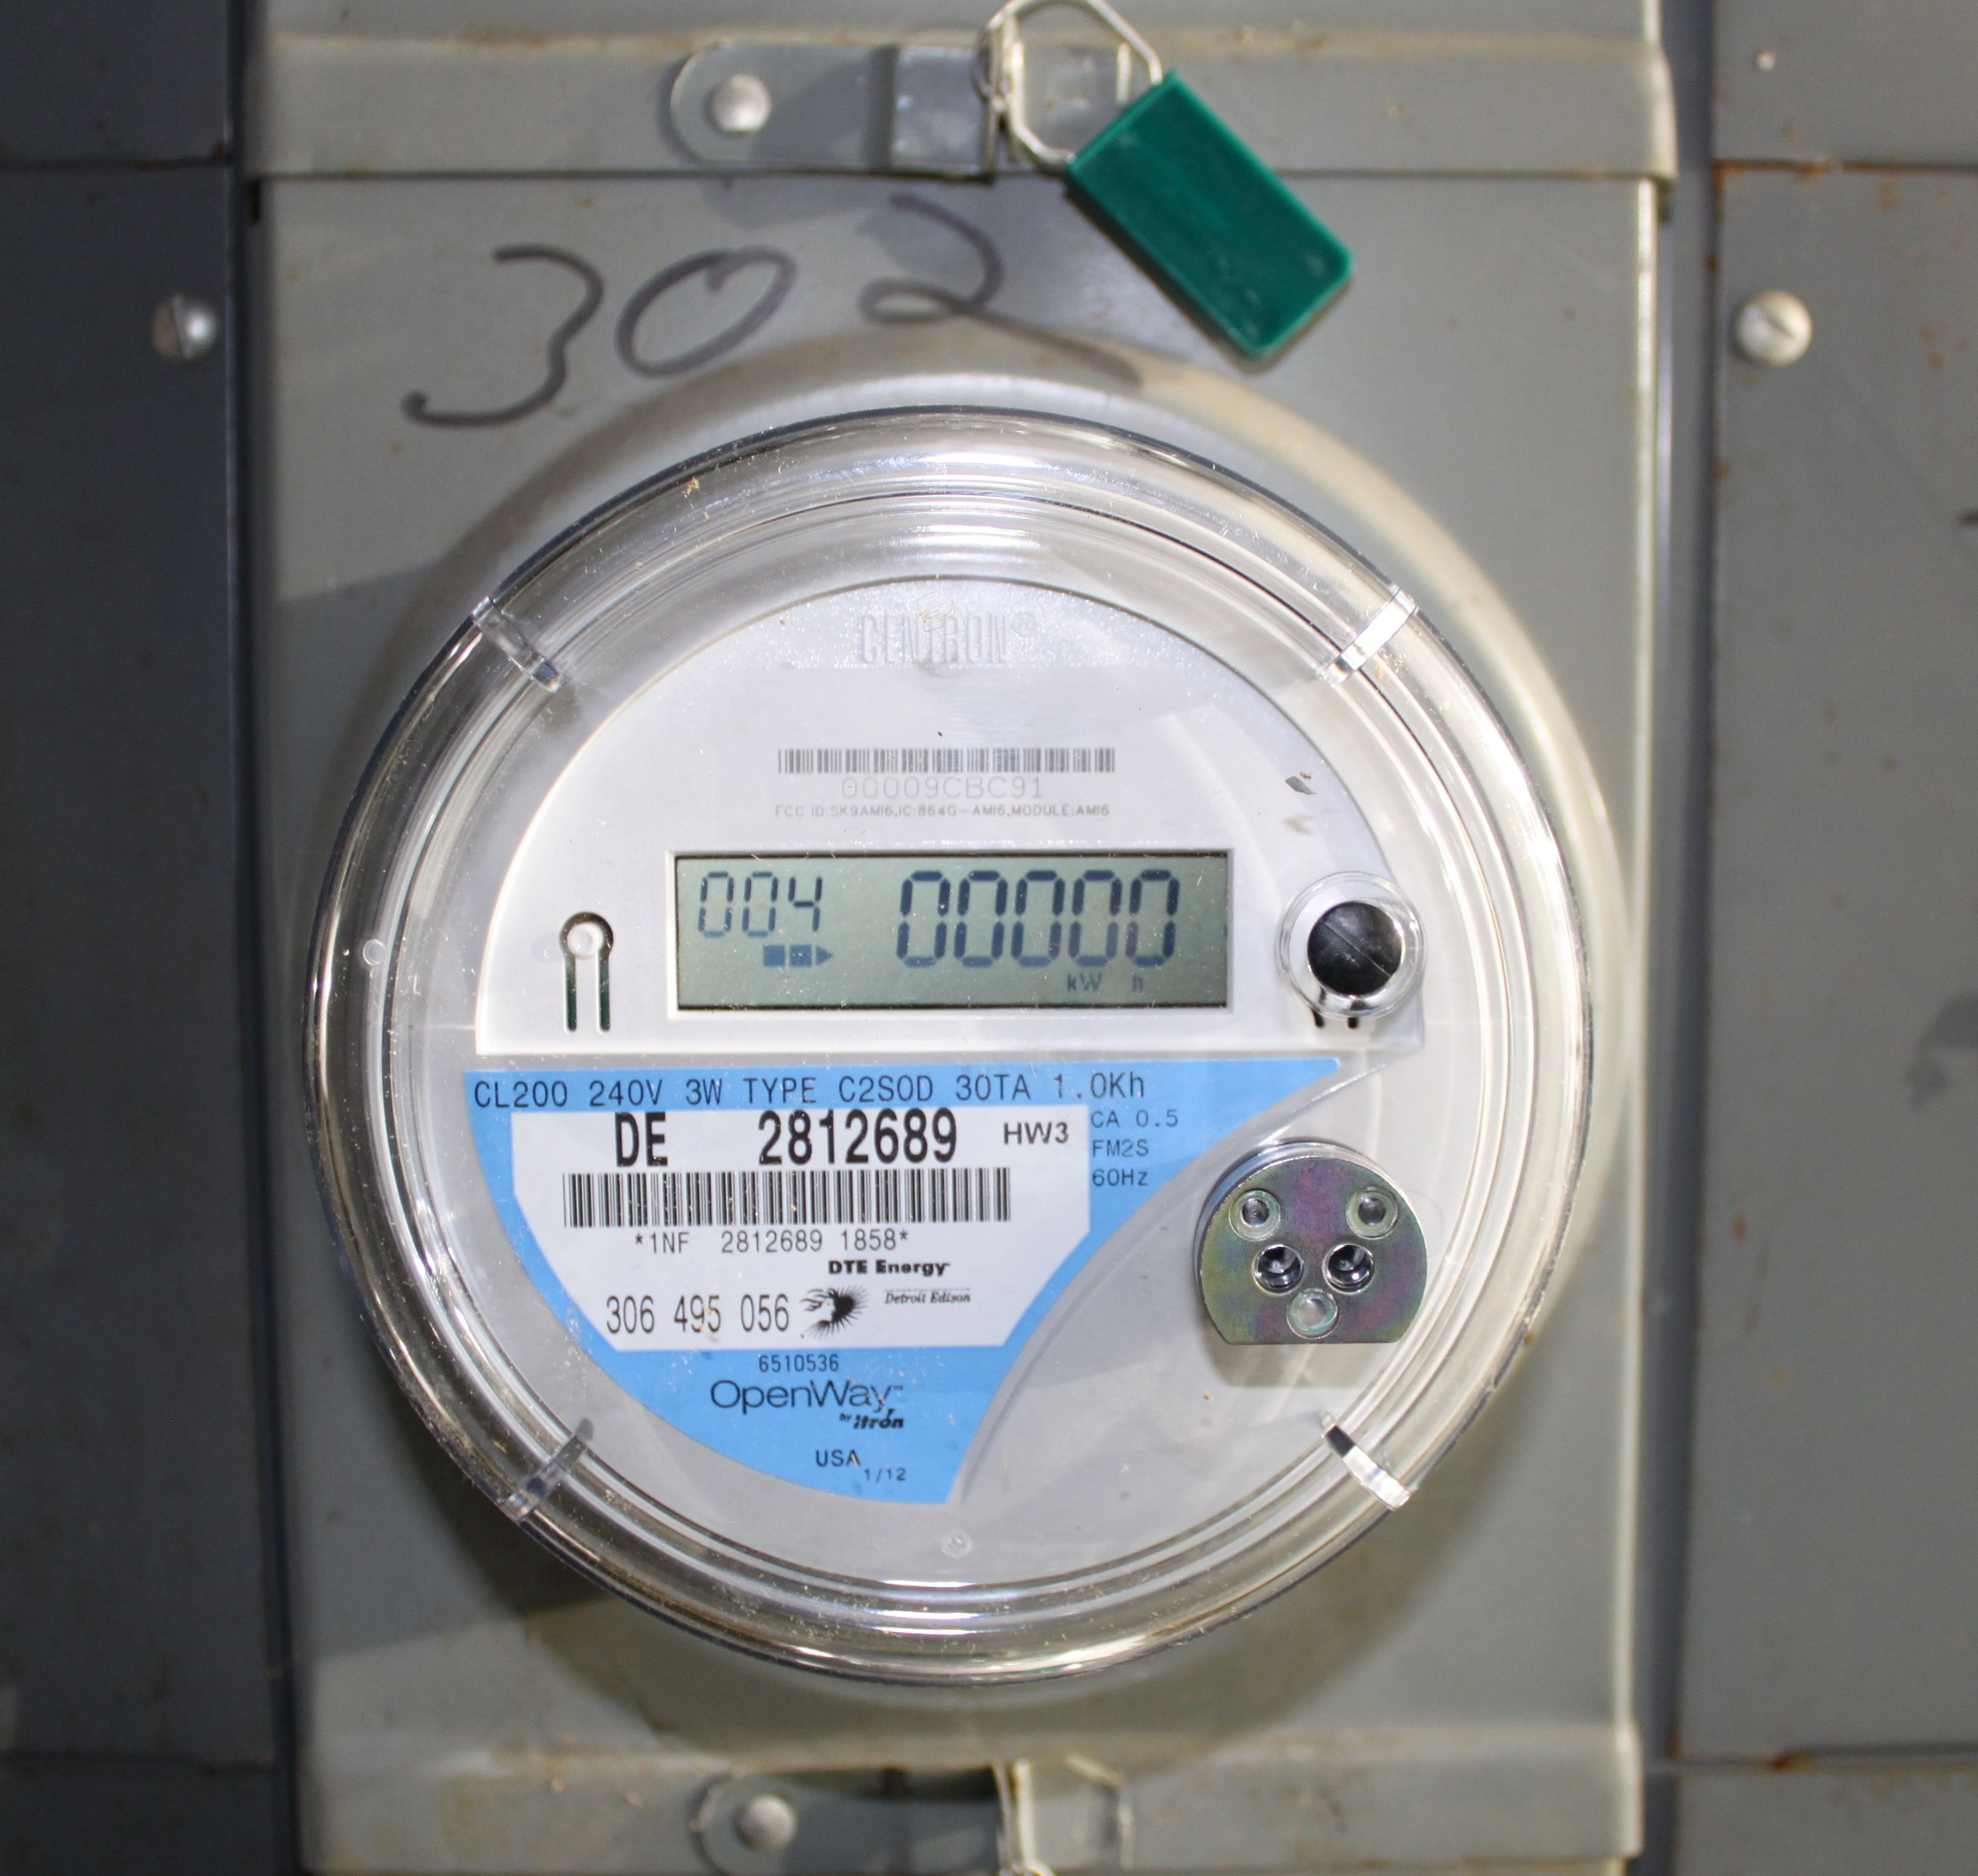 Smart Meter. For representational purposes only. (Source: Wikimedia Commons)